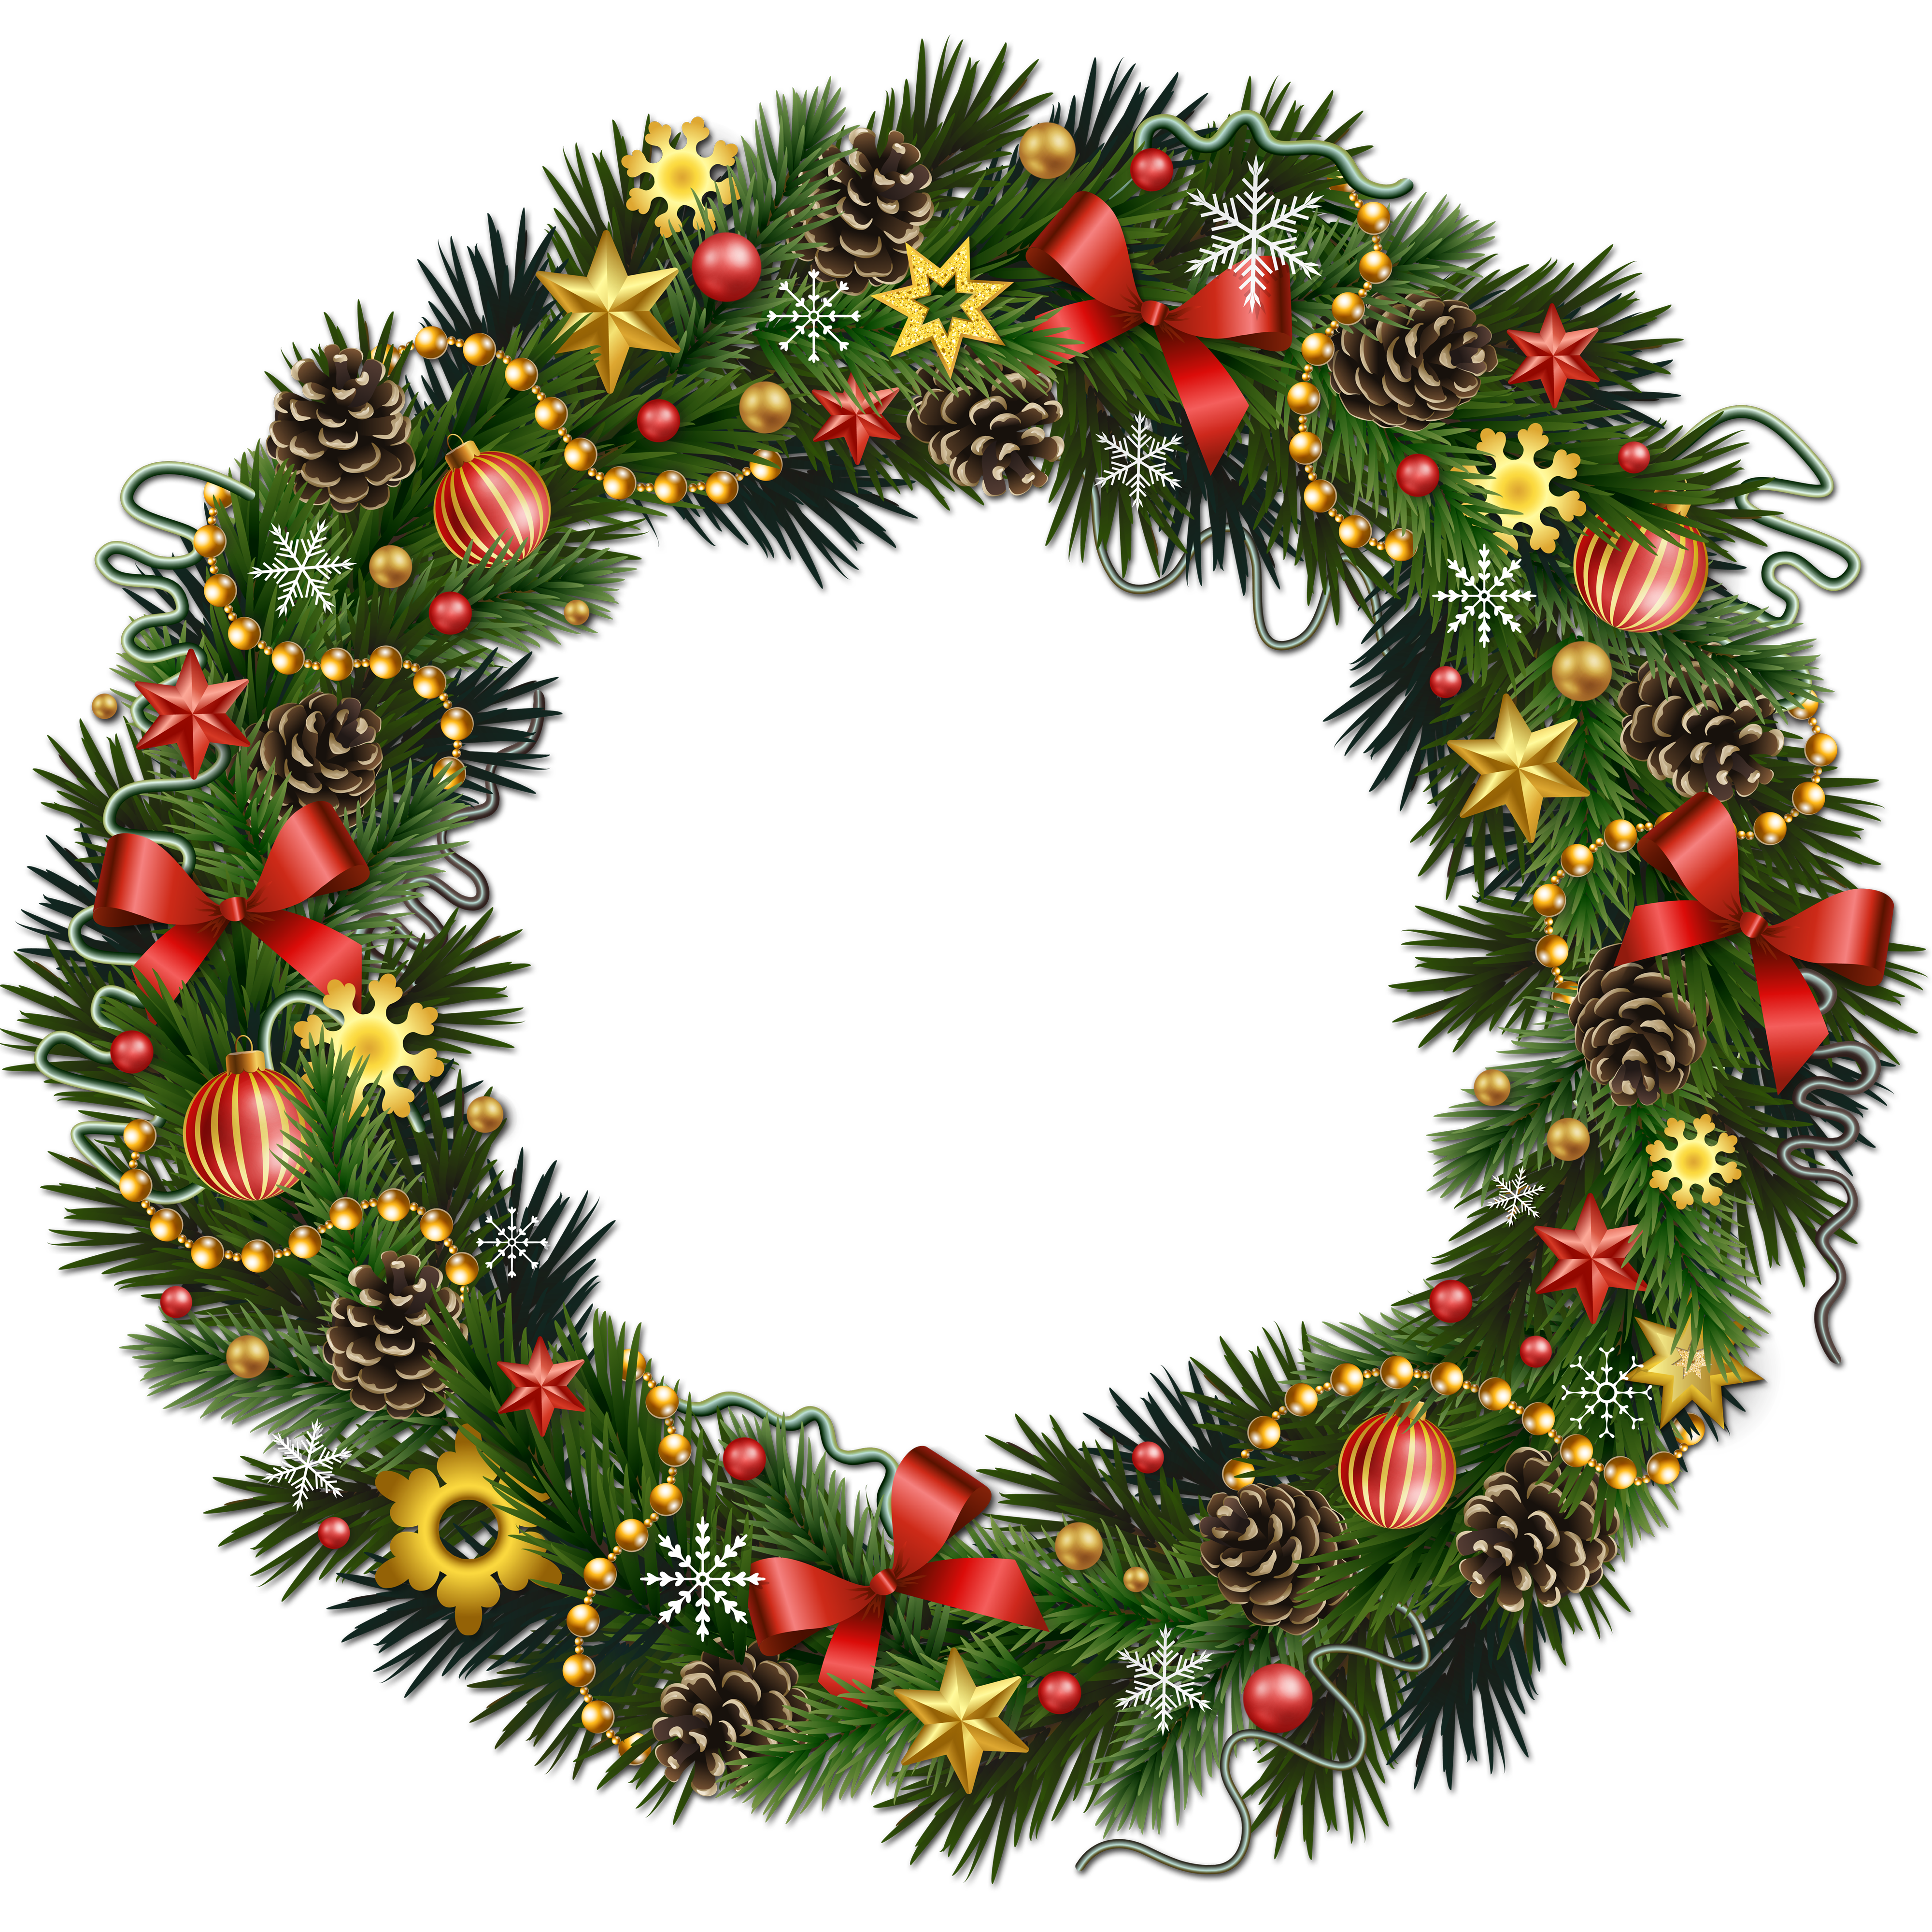 Transparent Christmas Wreath - Transparent Christmas Pinecone Wreath with Ornaments Clipart ...